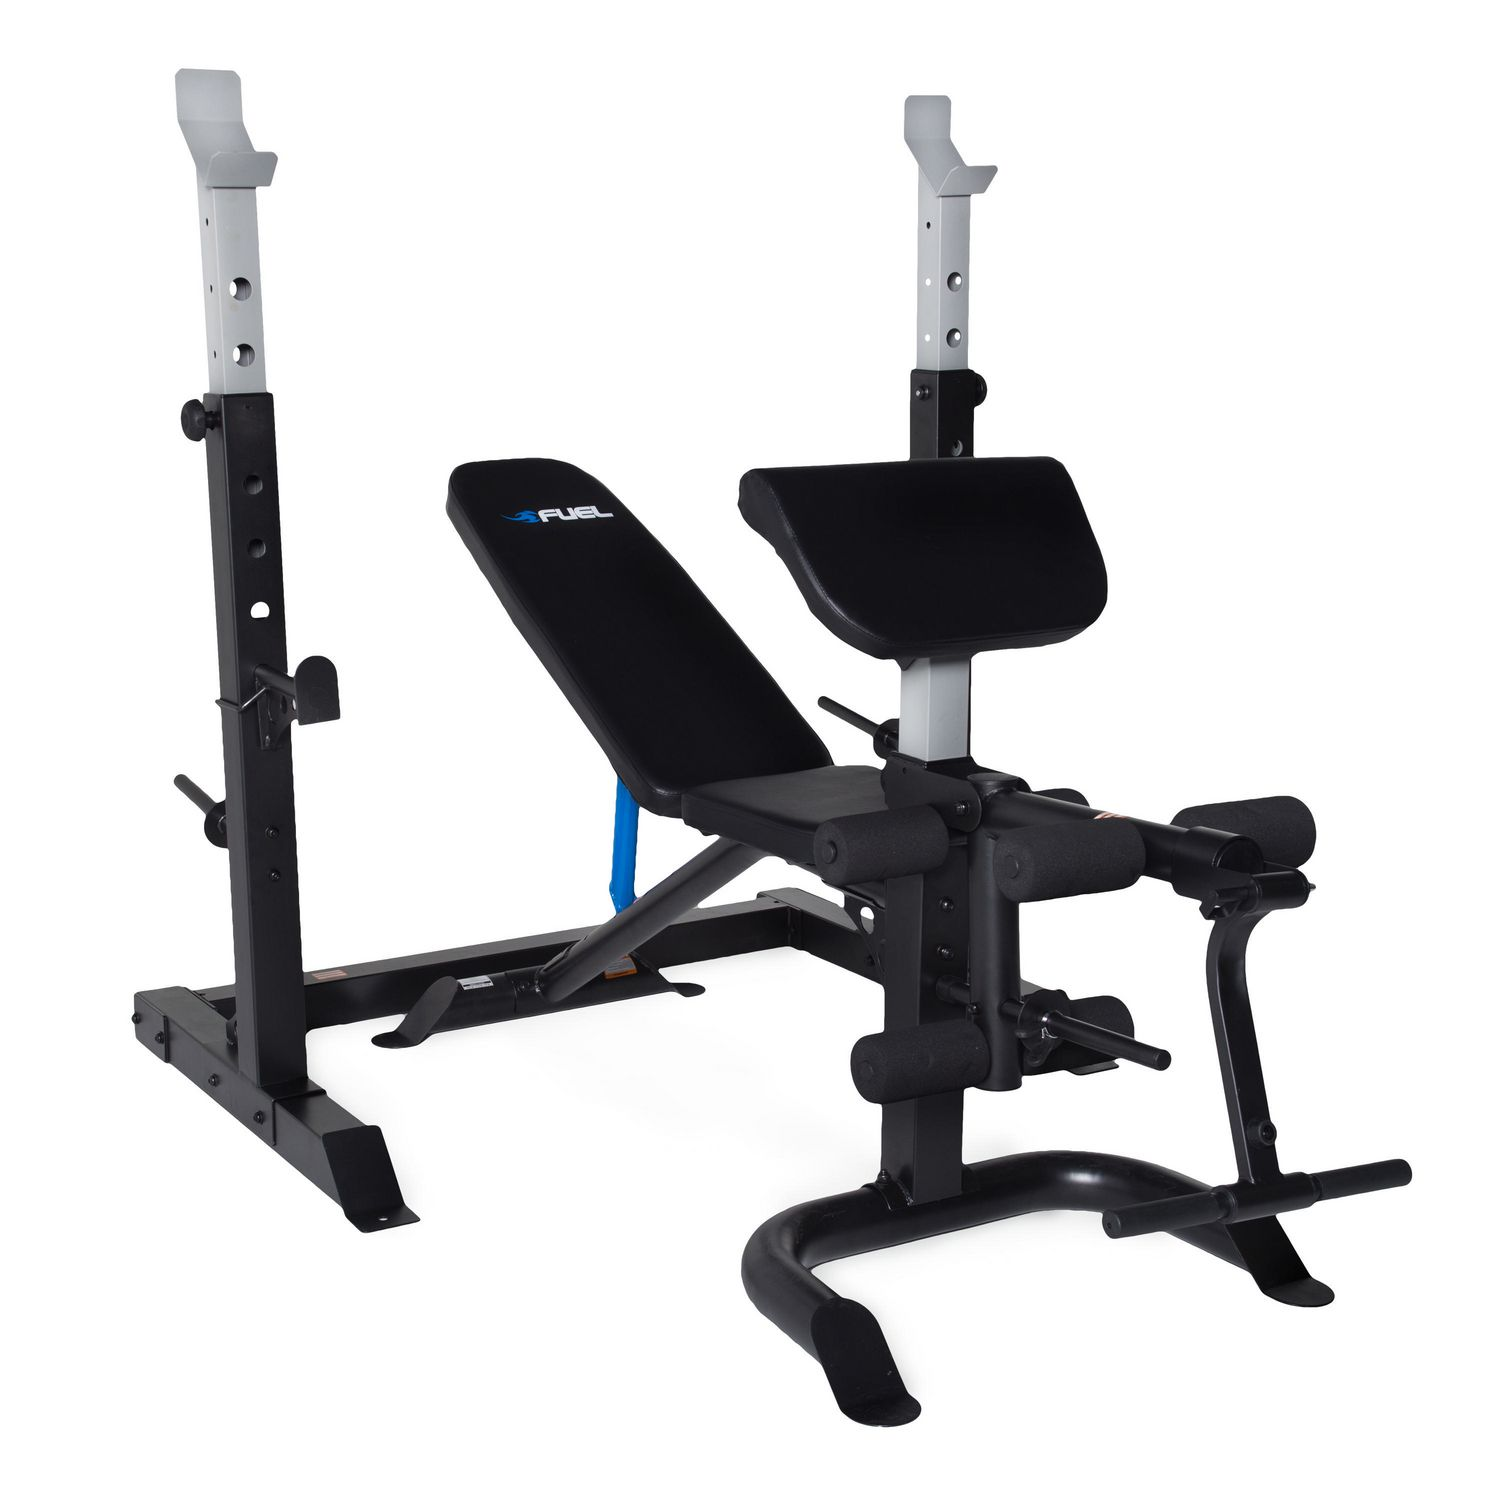 home gym reality golds weight best diy guide fitness for olympic bench handpicked compressor